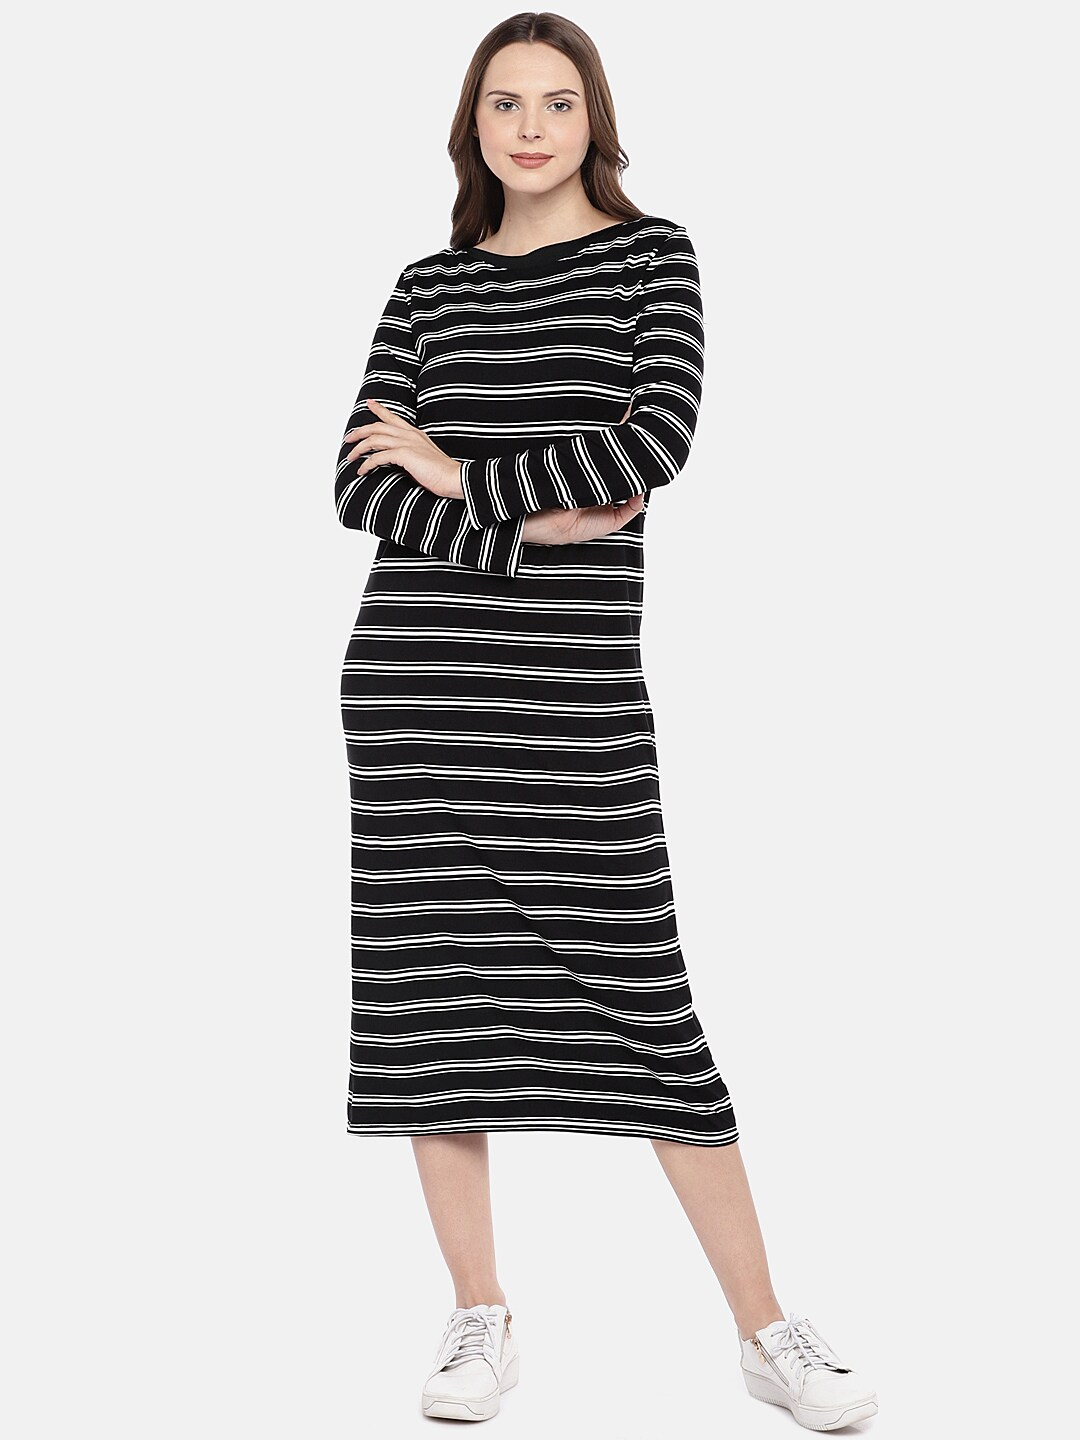 5aea0427c861 Midi Dresses - Buy Midi Dress for Women   Girl Online